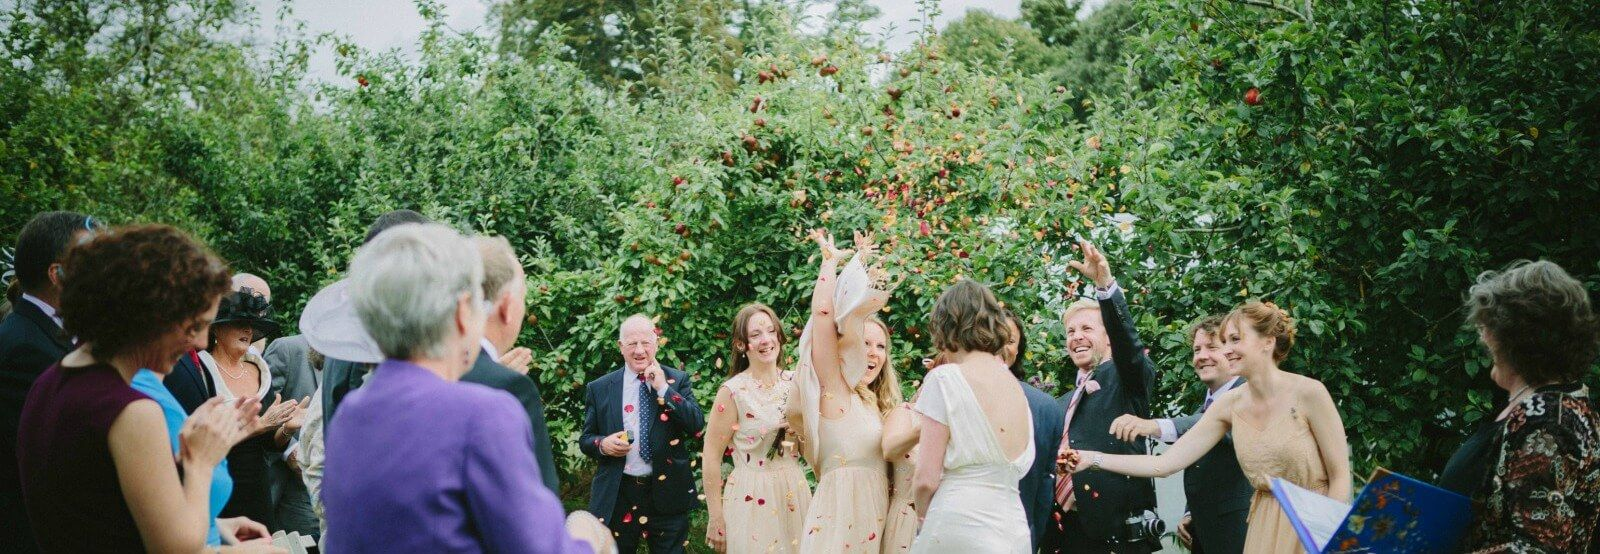 Outdoor Wedding Ceremony at Longueville House